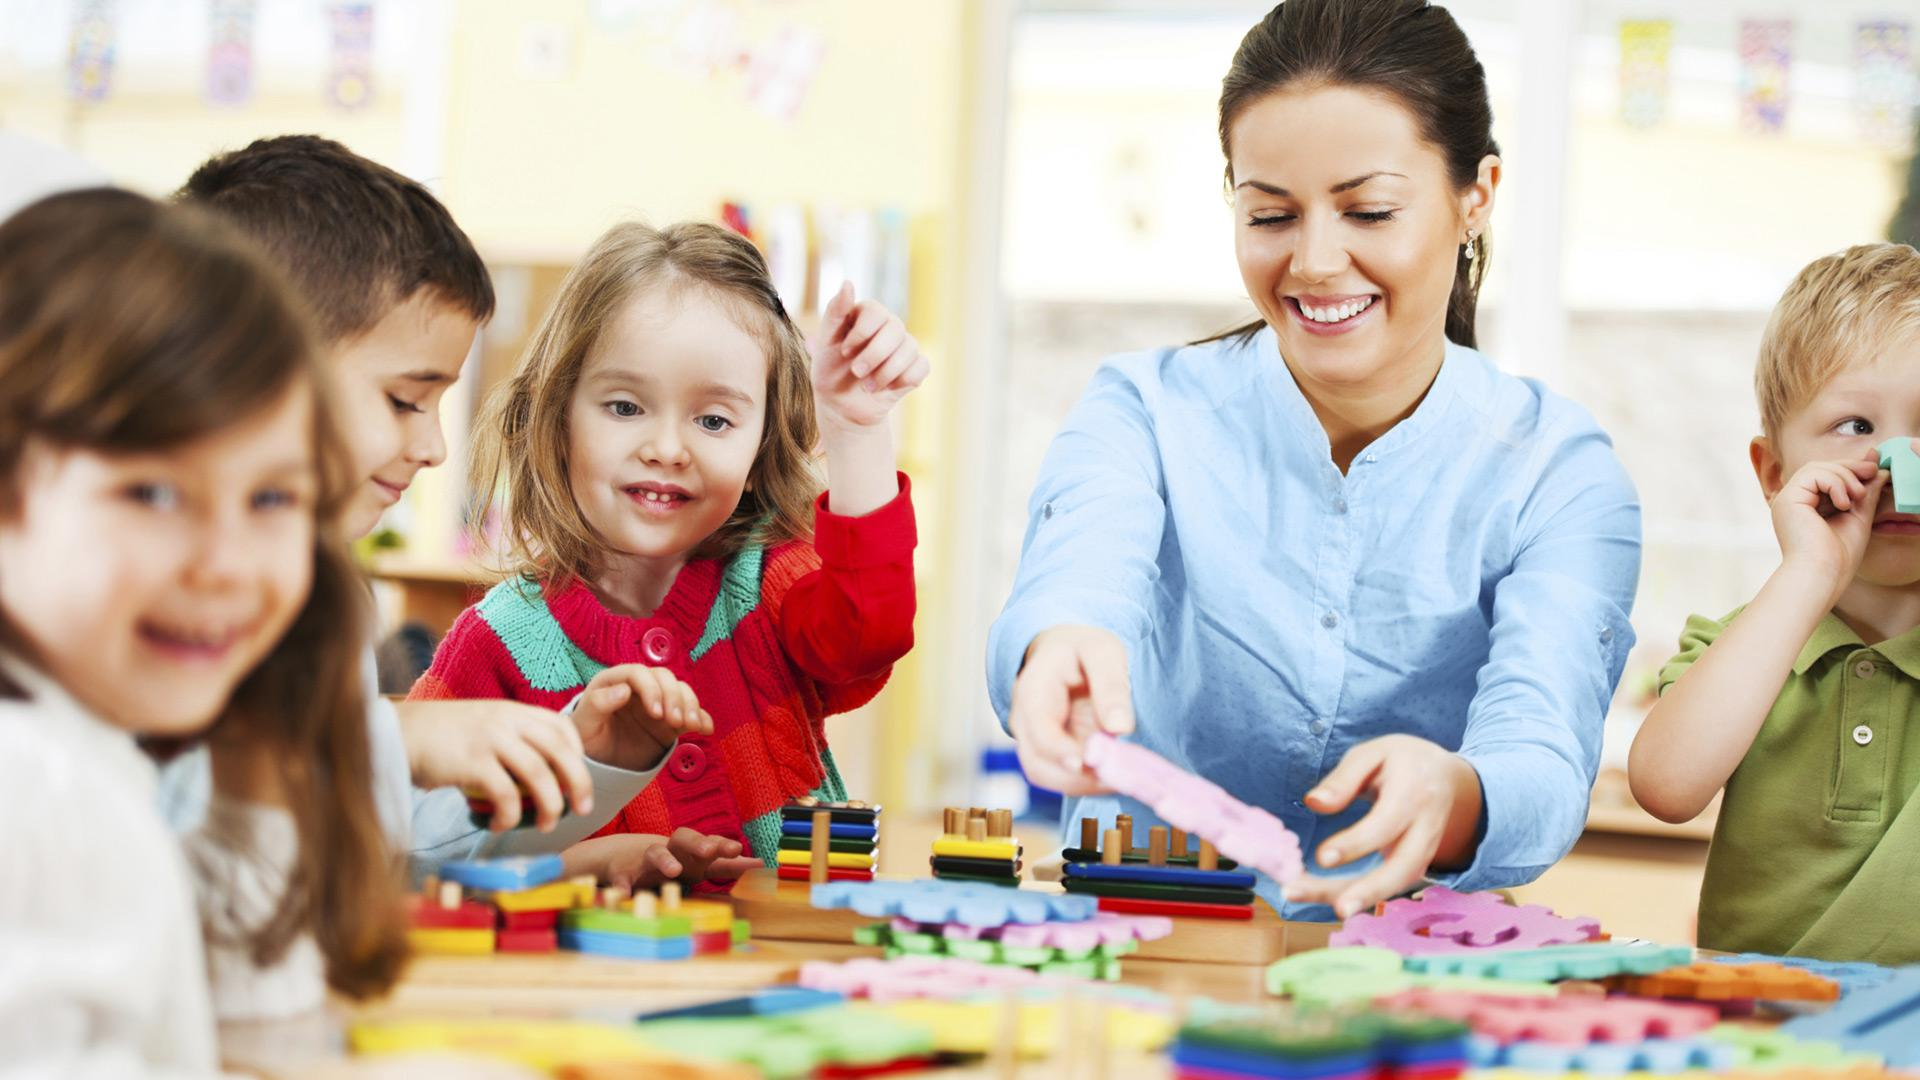 When It Comes To Day Care Parents Want >> How To Find Child Care You Can Afford Sheknows